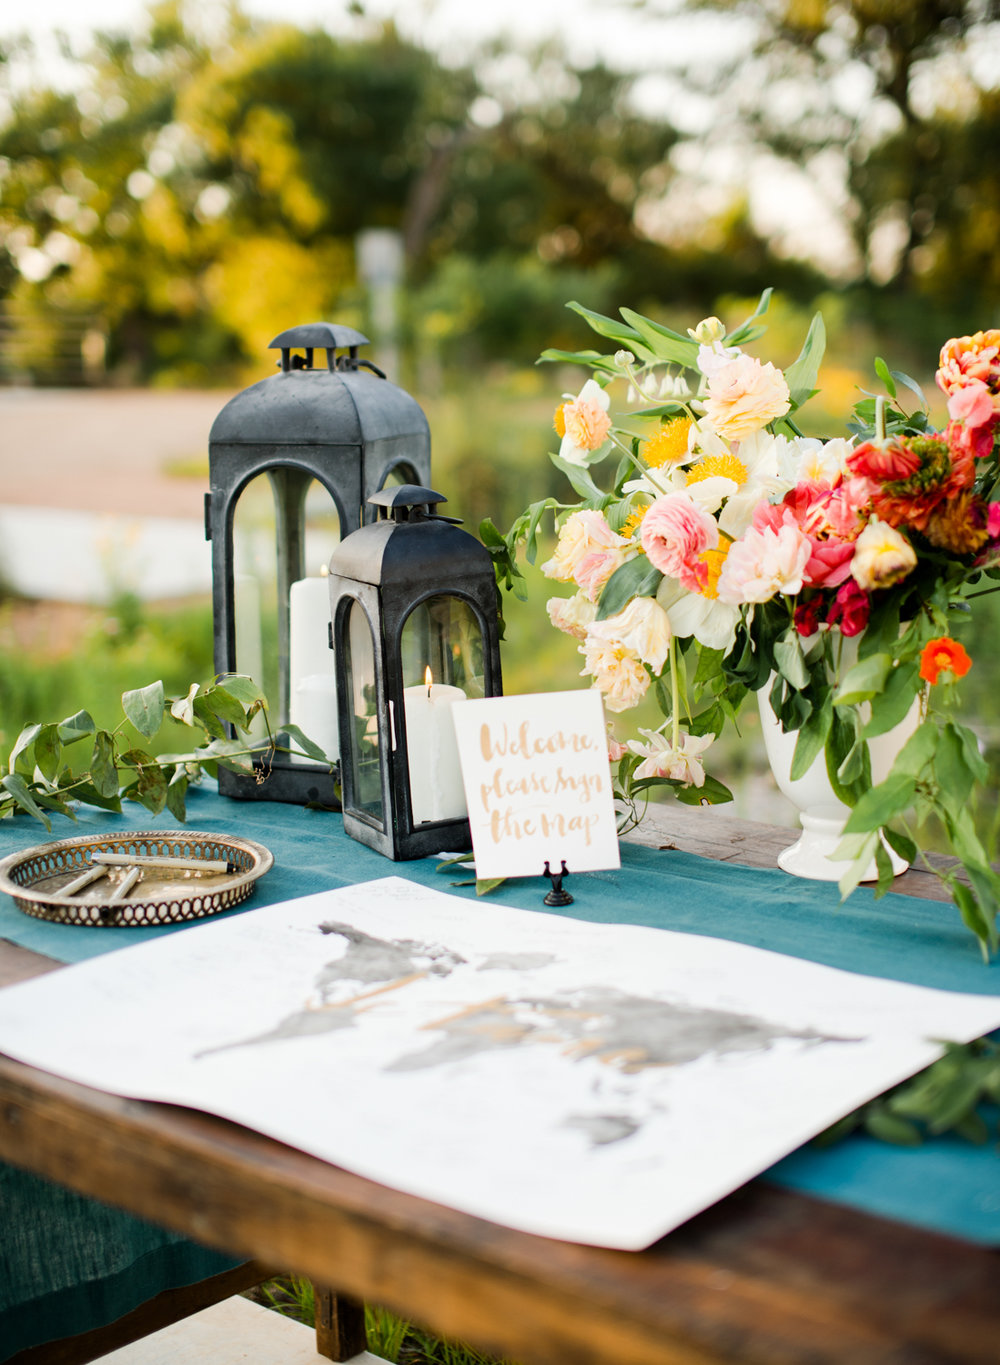 PROSPECT_HOUSE_WEDDING_AUSTIN_TX_BY_MATTHEW_MOORE_PHOTOGRAPHY_00579.jpg